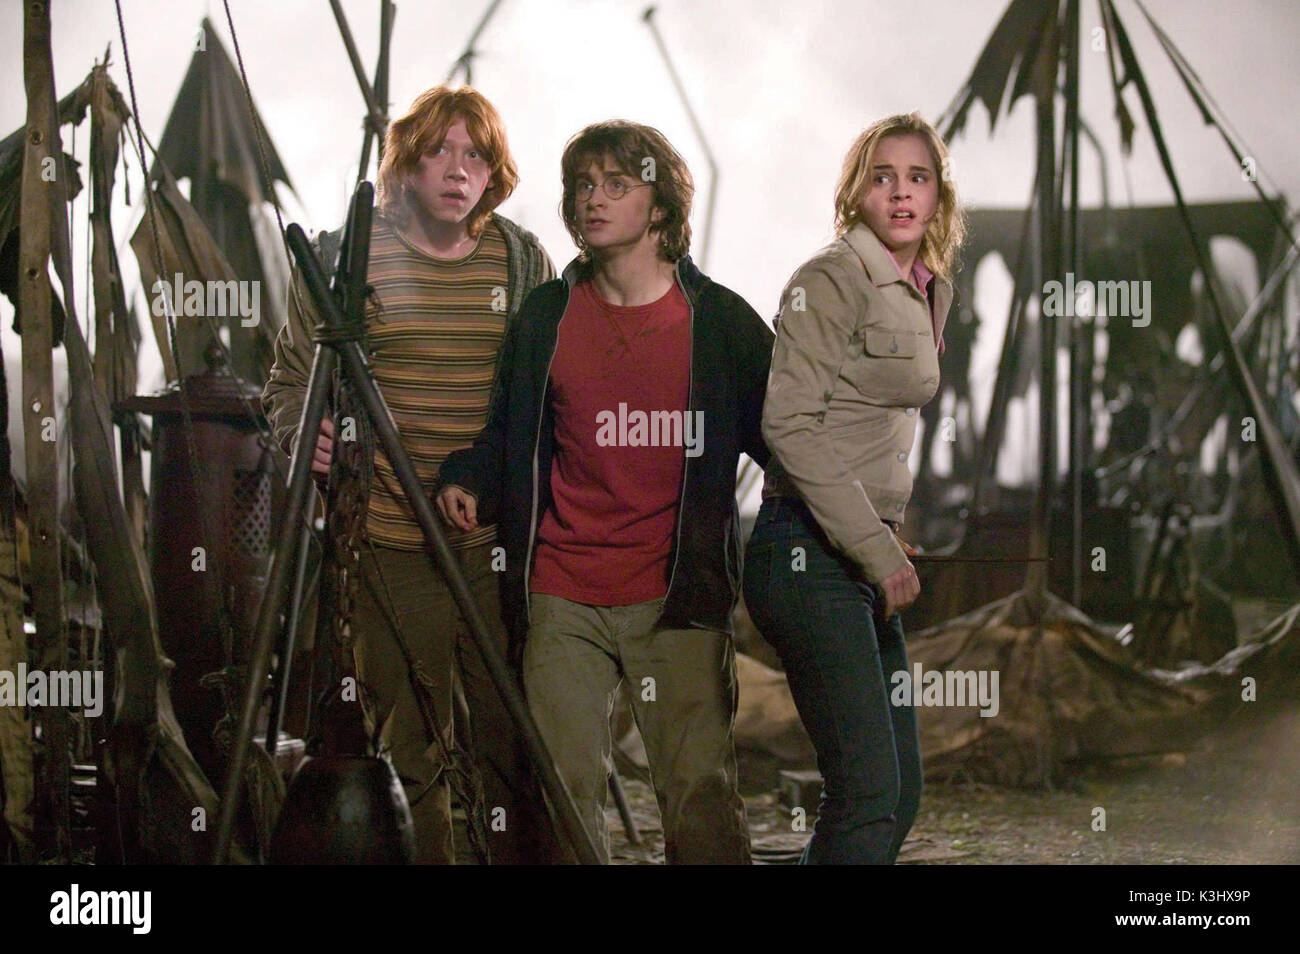 HARRY POTTER AND THE GOBLET OF FIRE RUPERT GRINT as Ron Weasley, DANIEL RADCLIFFE as Harry Potter and EMMA WATSON as Hermione Granger PHOTOGRAPHS TO BE USED SOLELY FOR ADVERTISING, PROMOTION, PUBLICITY OR REVIEWS OF THIS SPECIFIC MOTION PICTURE AND TO REMAIN THE PROPERTY OF THE STUDIO. NOT FOR SALE OR REDISTRIBUTION     Date: 2005 - Stock Image